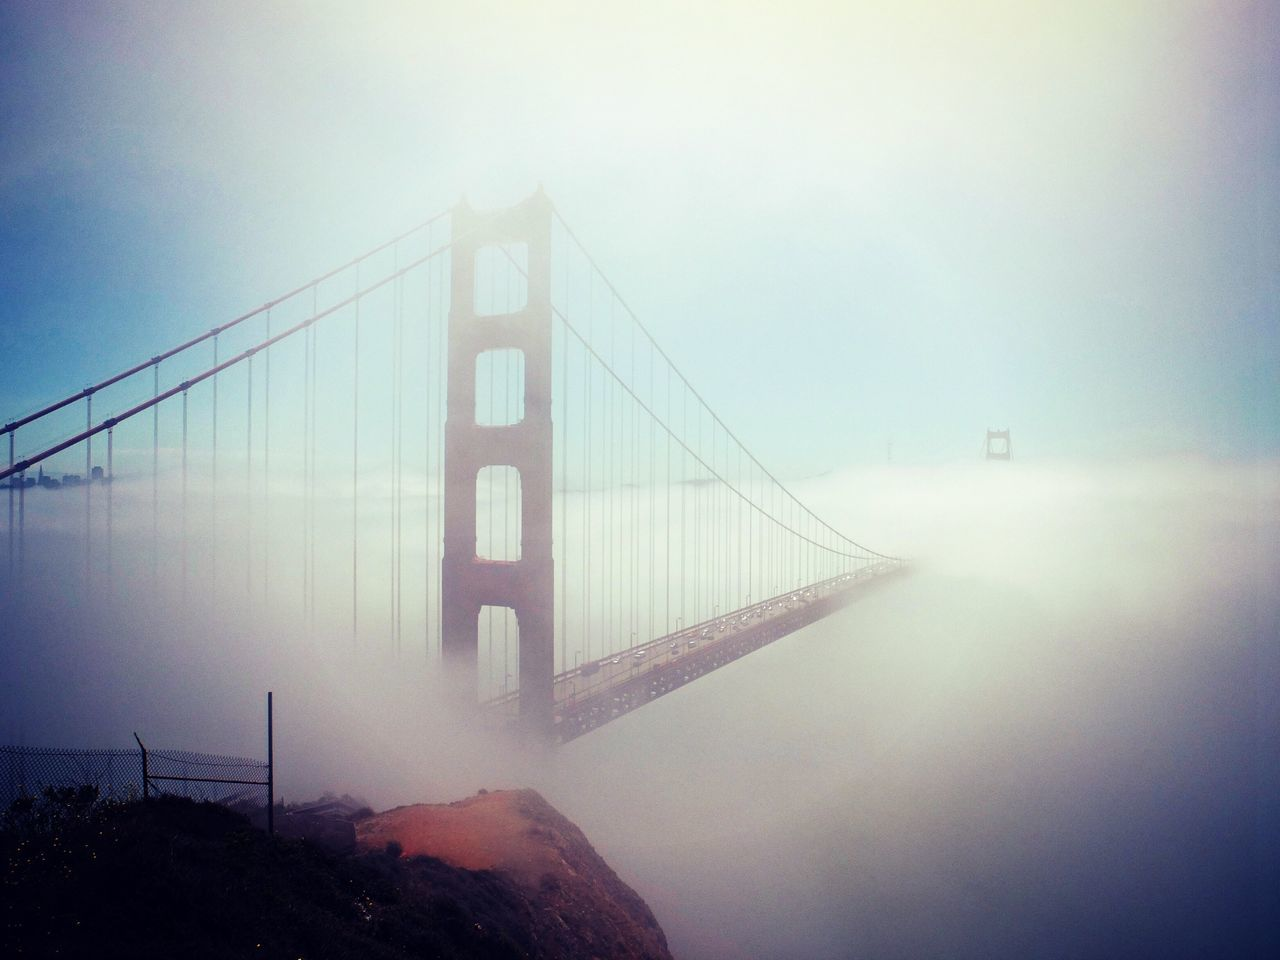 bridge - man made structure, suspension bridge, connection, fog, engineering, foggy, transportation, architecture, outdoors, travel destinations, sky, bridge, river, built structure, travel, no people, day, mountain, water, nature, city